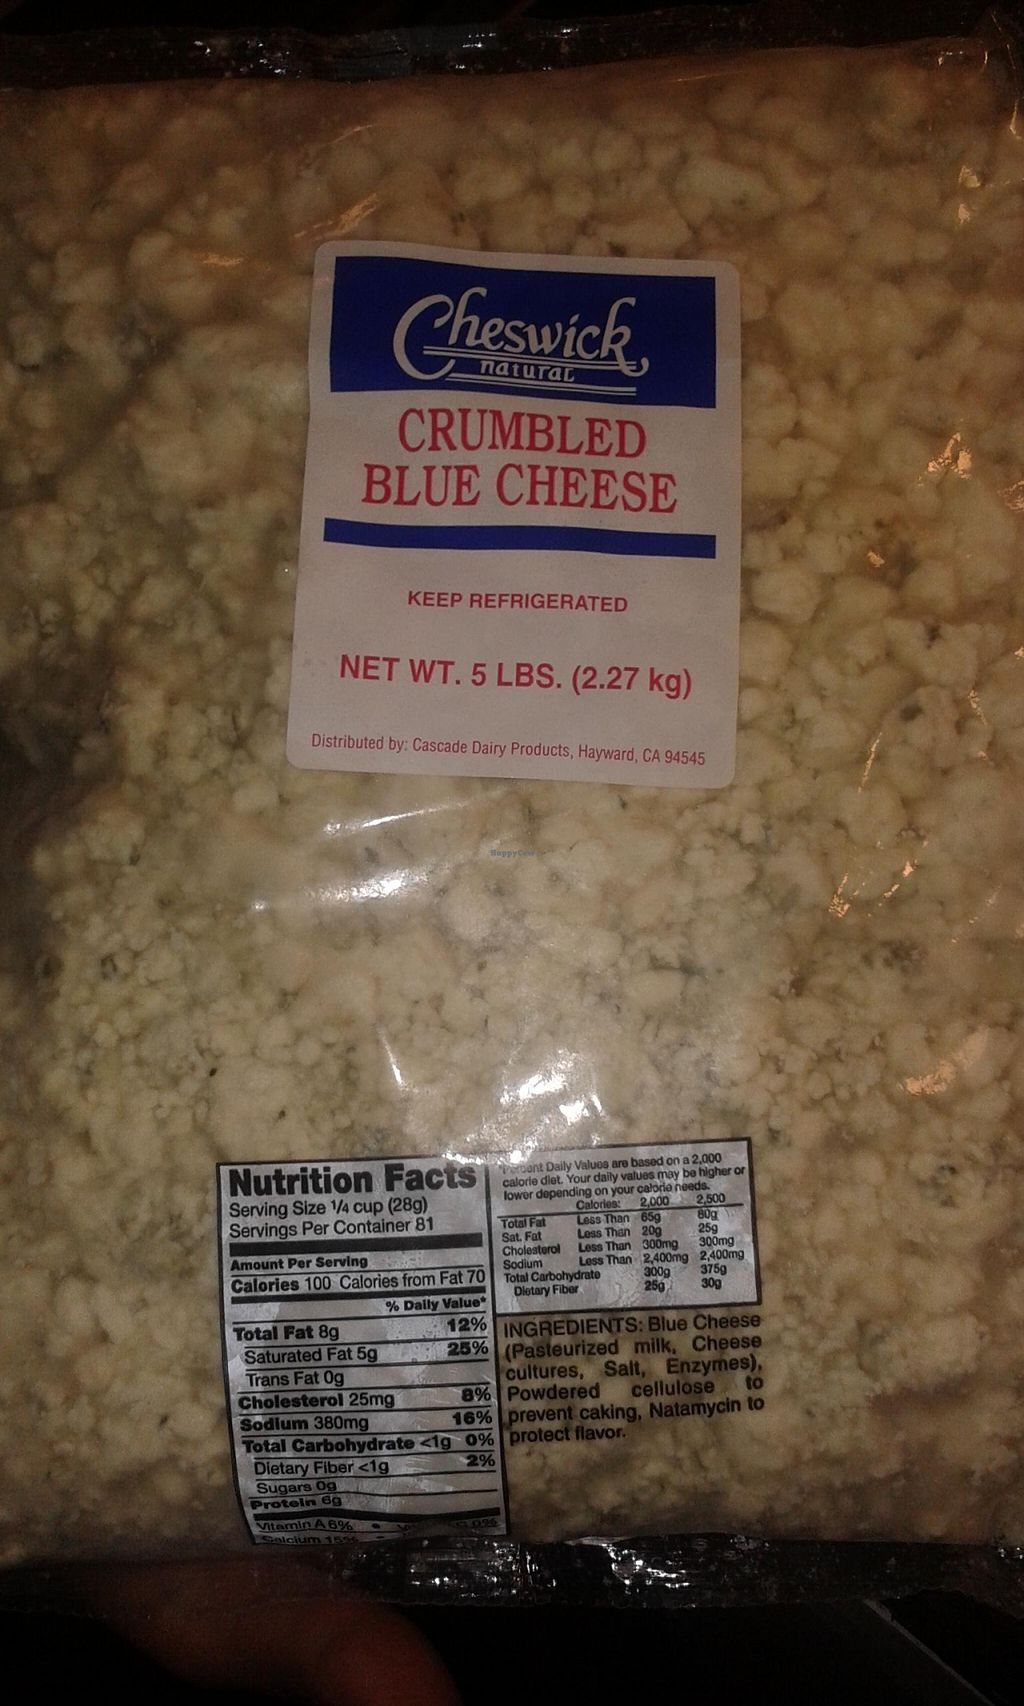 "Photo of Tallore Soups  by <a href=""/members/profile/Stevie"">Stevie</a> <br/>This is the cheese they use as at 9 Jan 2016. Frank serving insists they specify to their supplier the cheese is lacto vegetarian <br/> January 8, 2016  - <a href='/contact/abuse/image/48107/131554'>Report</a>"